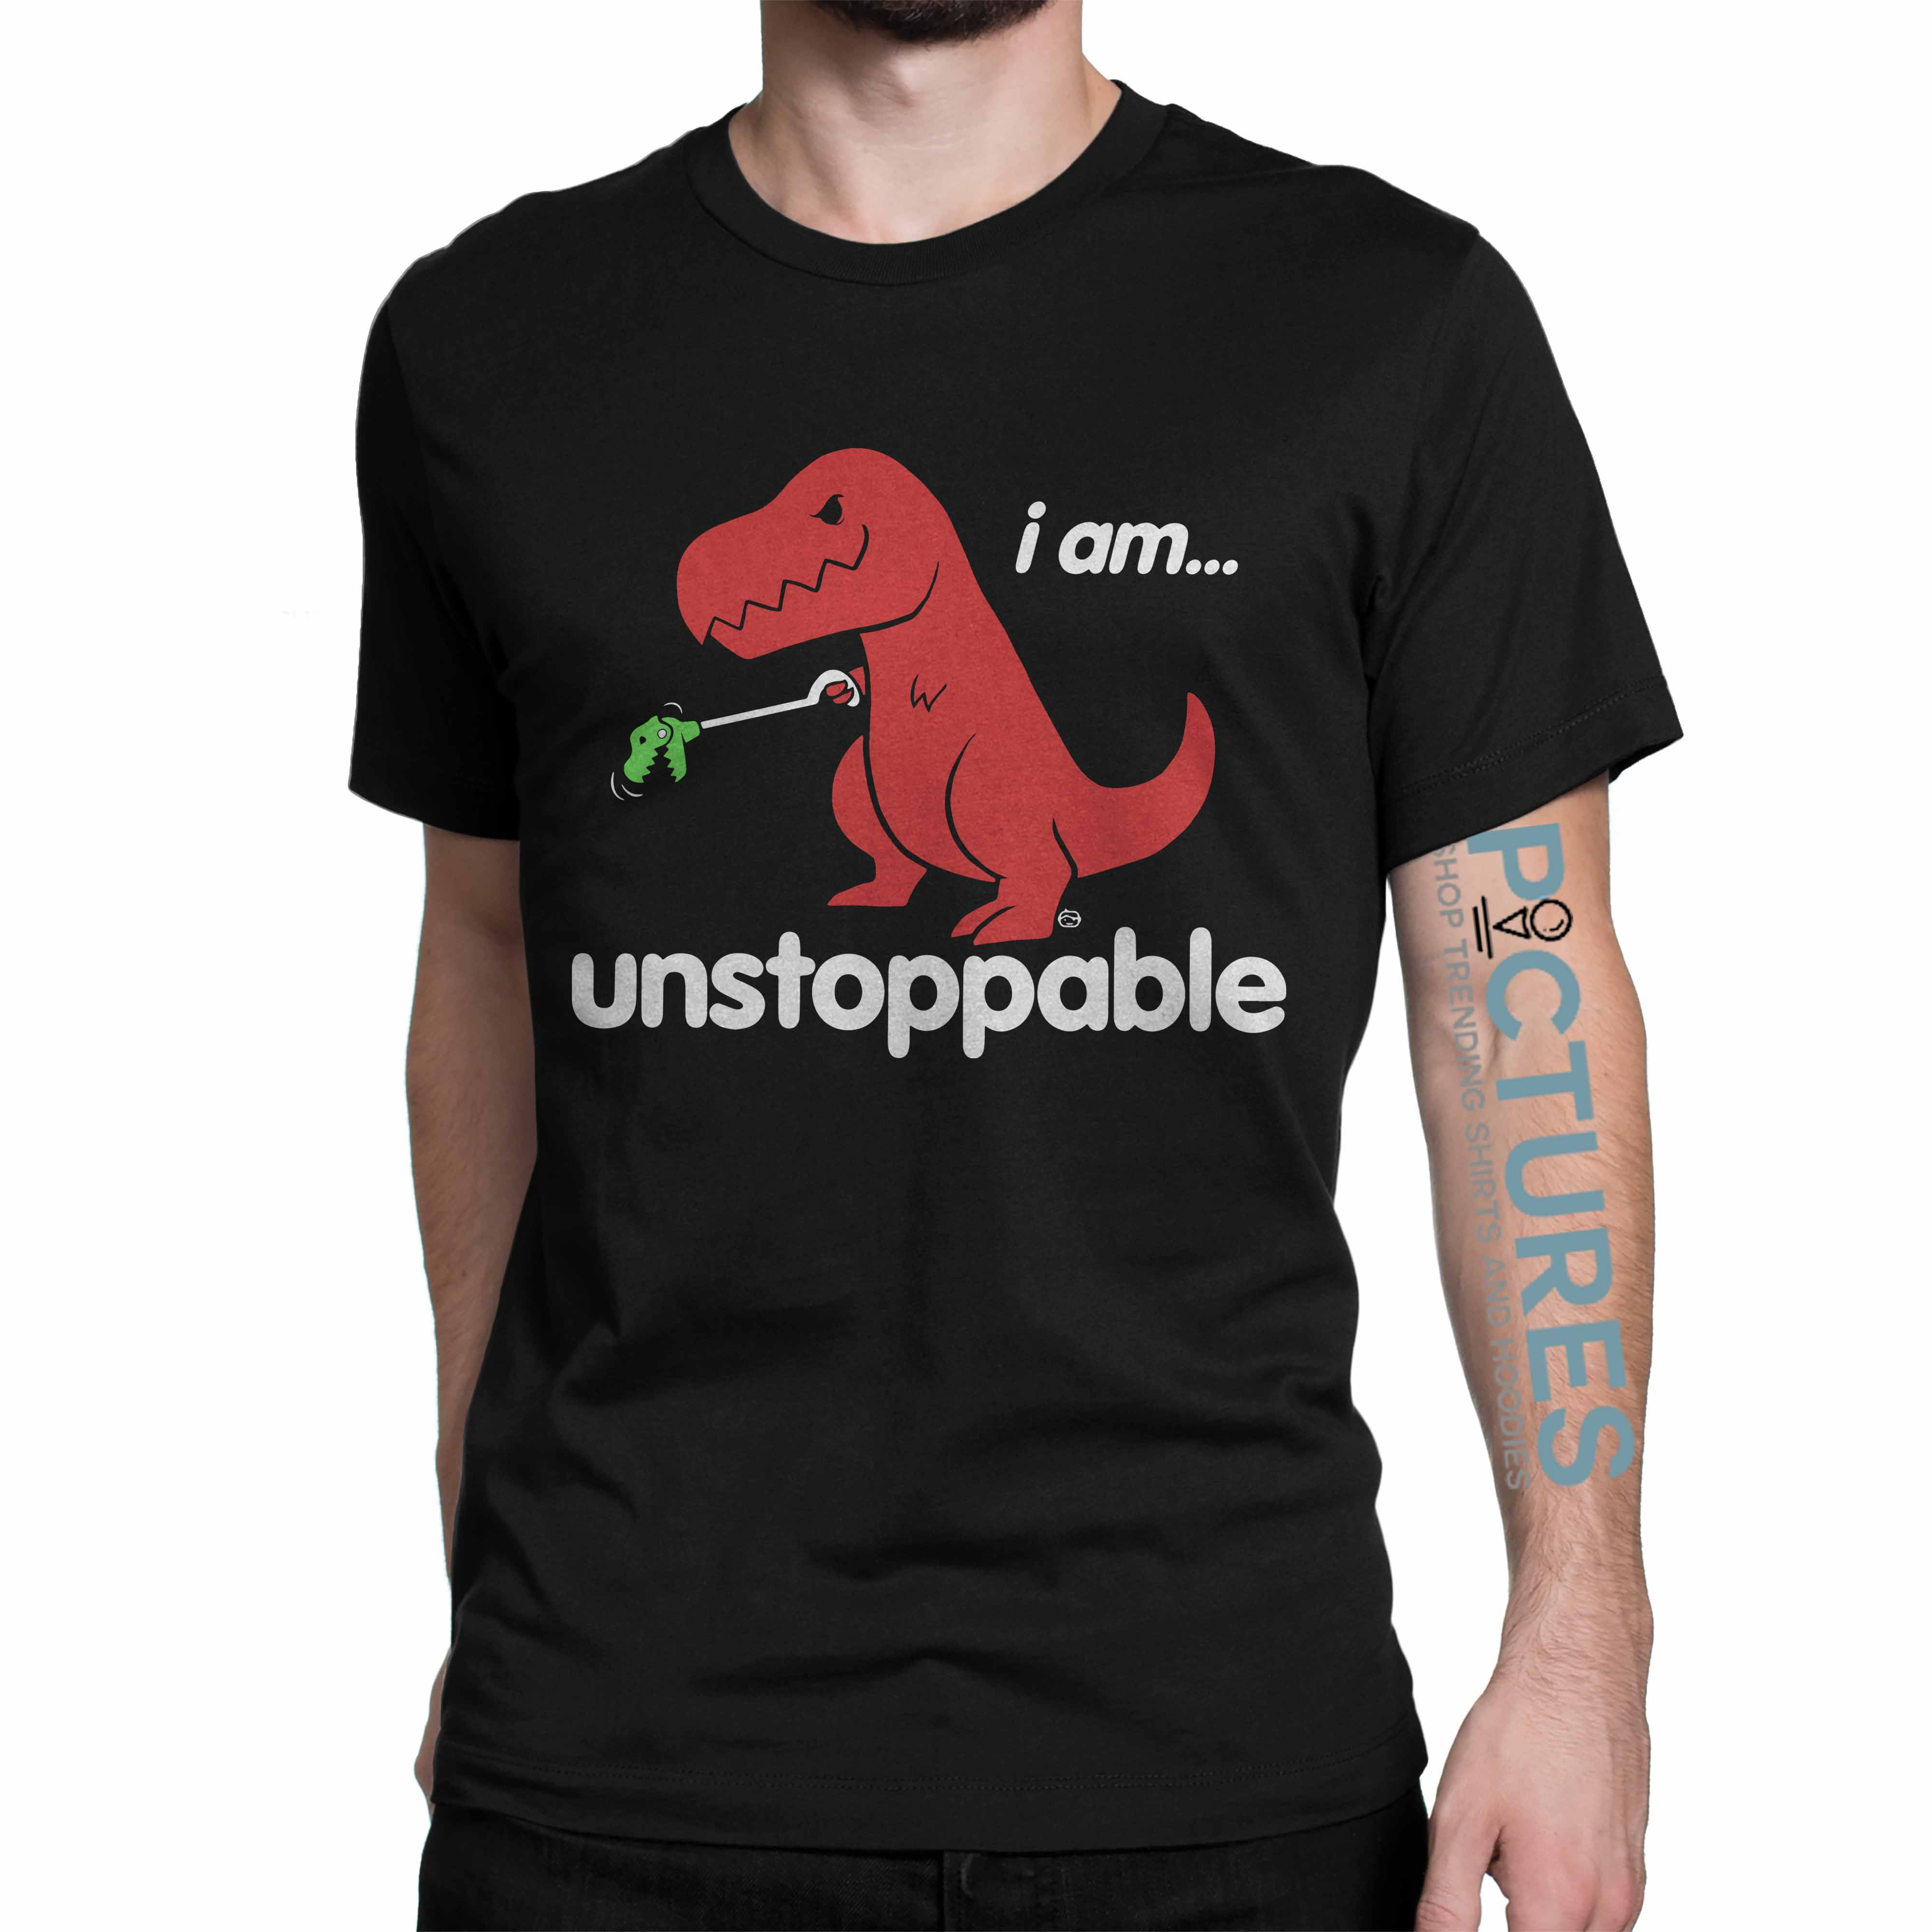 Official Unstoppable Dinosaur shirt